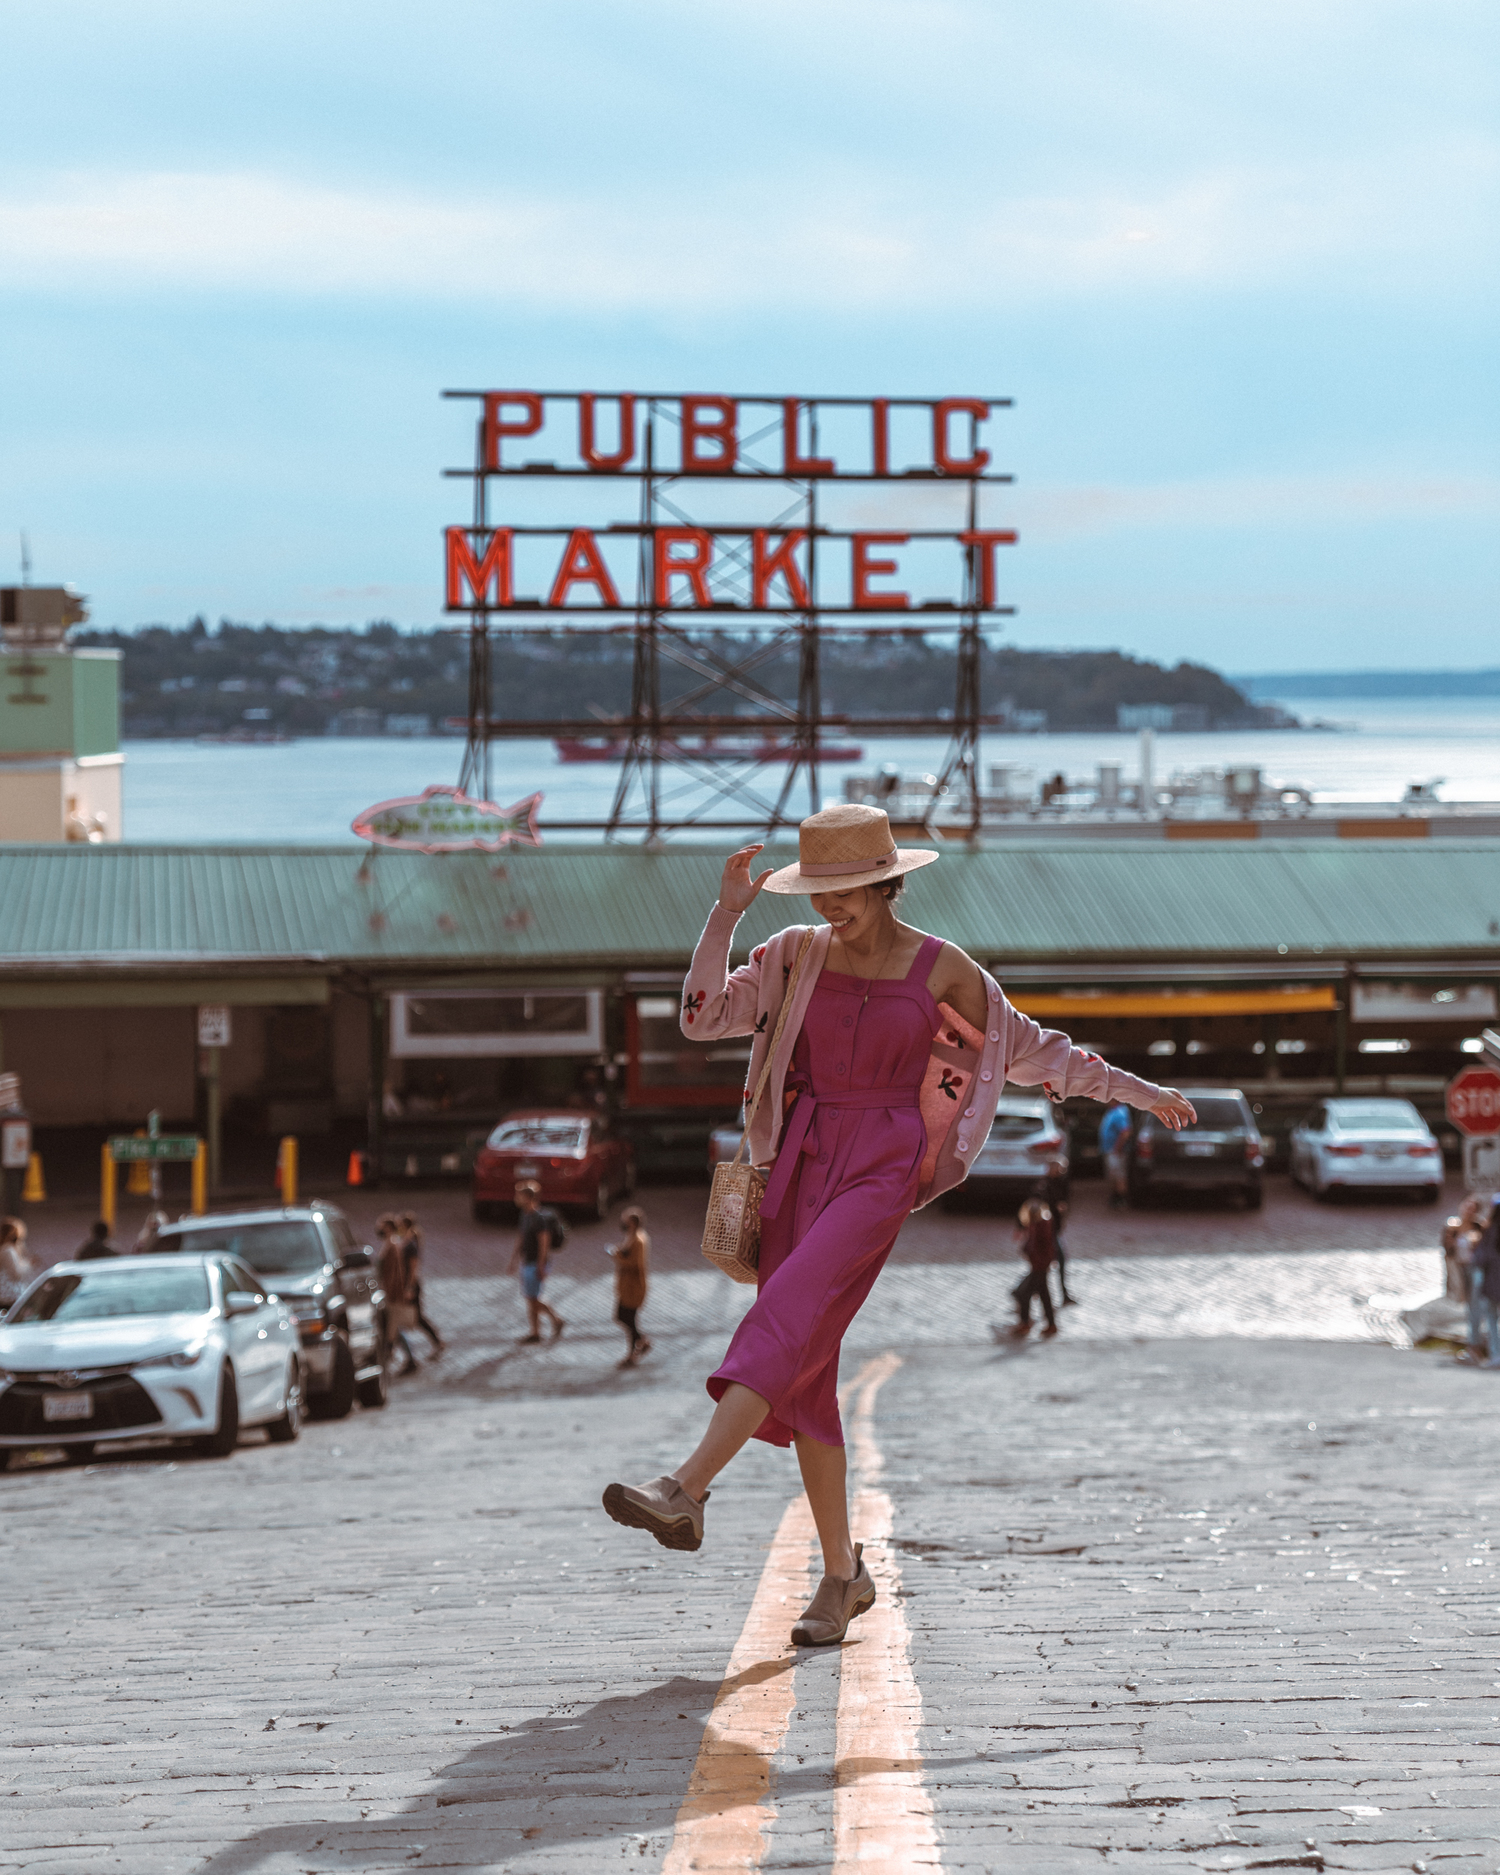 Girl in front of Public Market sign in middle of road at Pike Place Market, Seattle